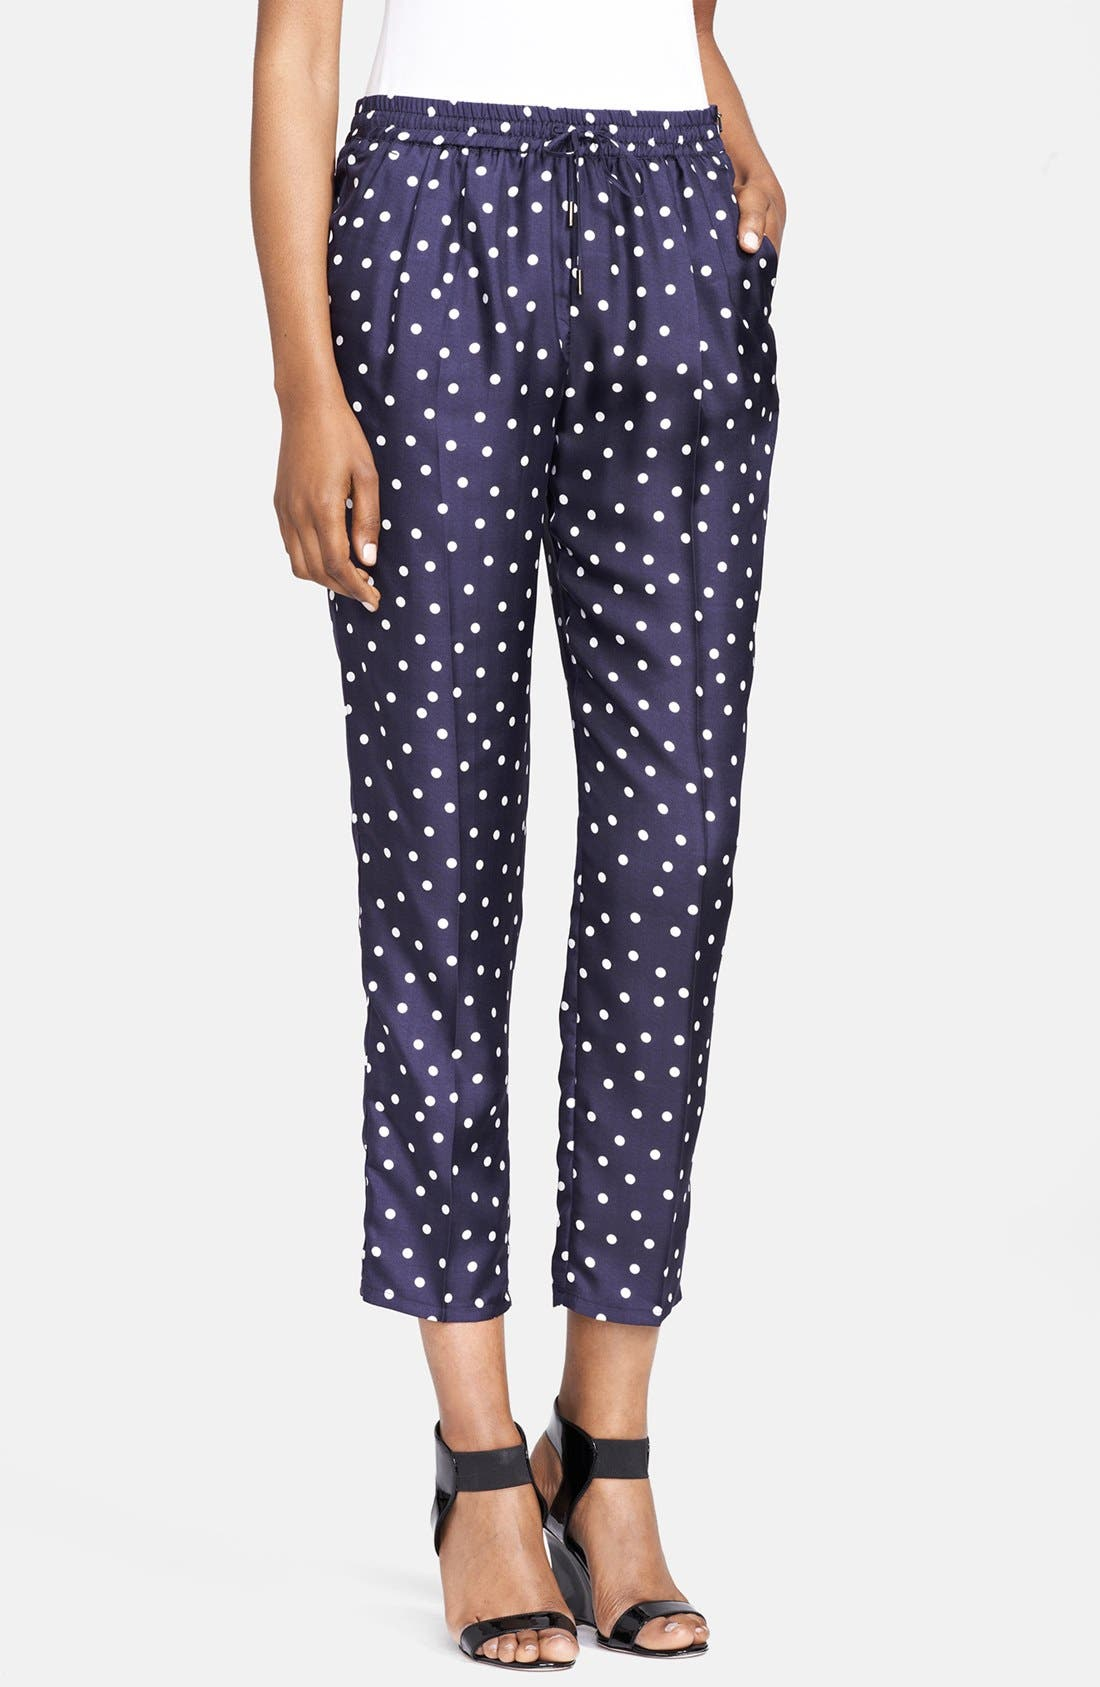 Alternate Image 1 Selected - Max Mara 'Aligi' Polka Dot Silk Pants